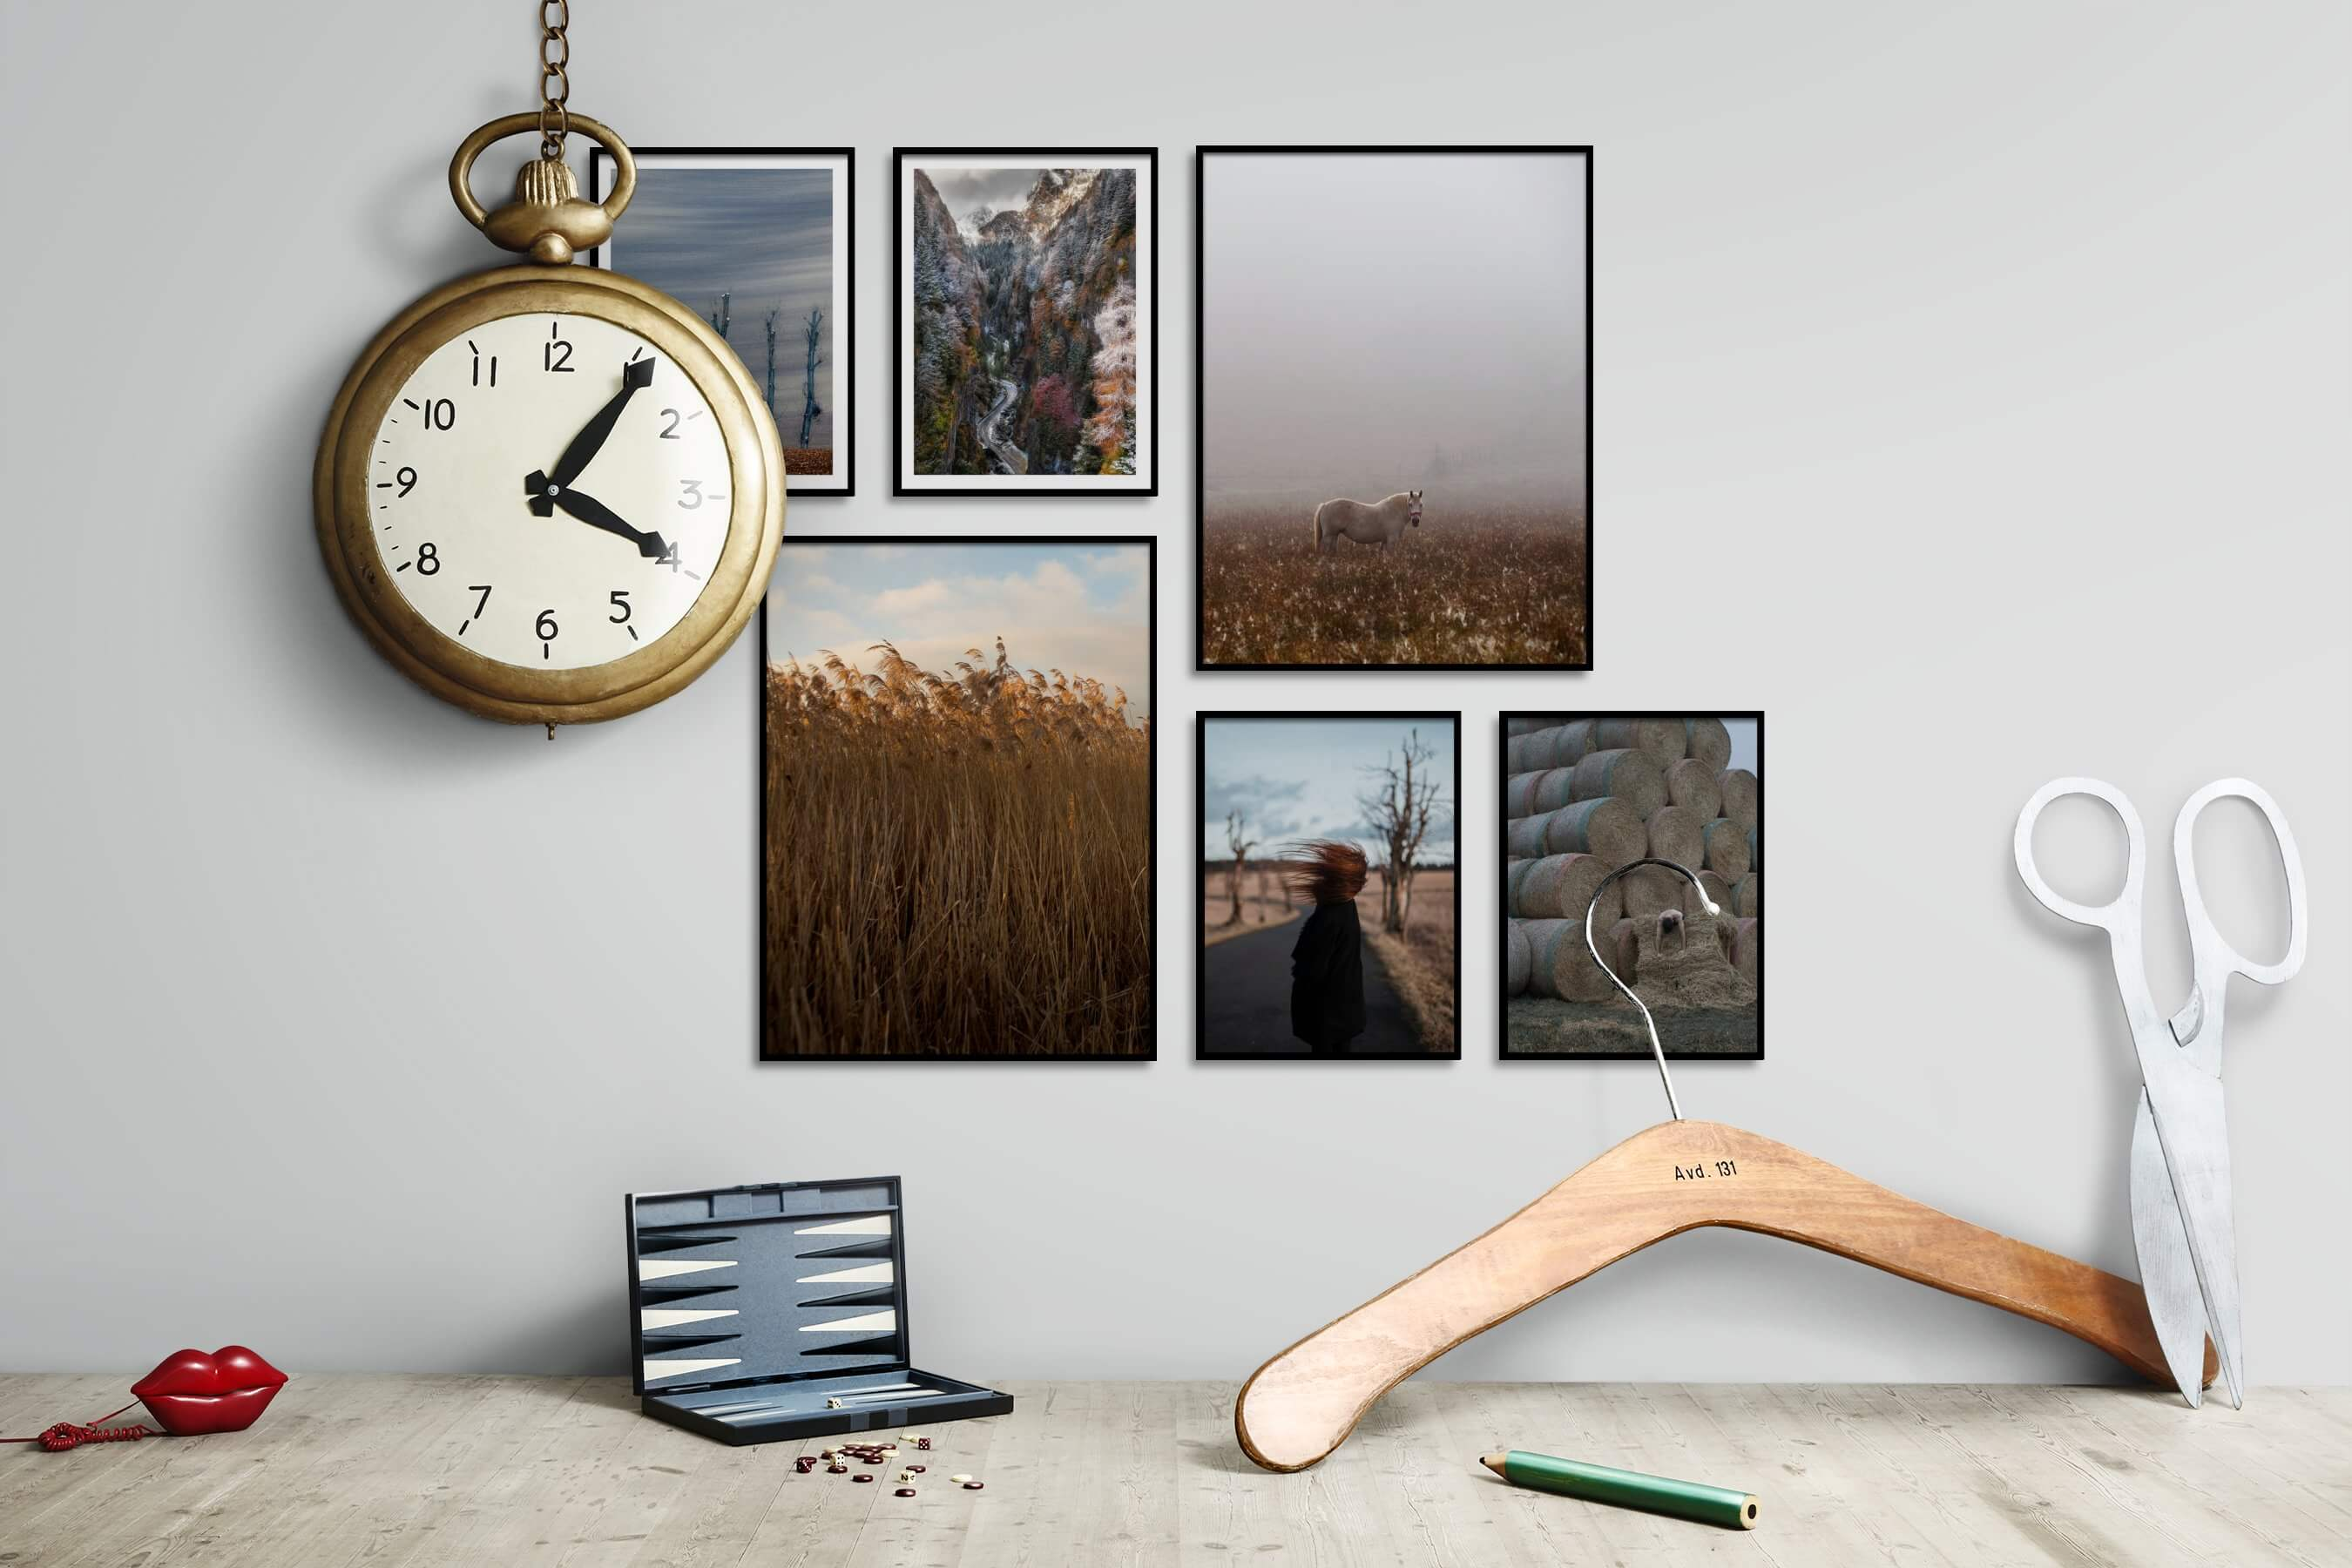 Gallery wall idea with six framed pictures arranged on a wall depicting For the Moderate, Country Life, Nature, Mindfulness, Animals, and Artsy